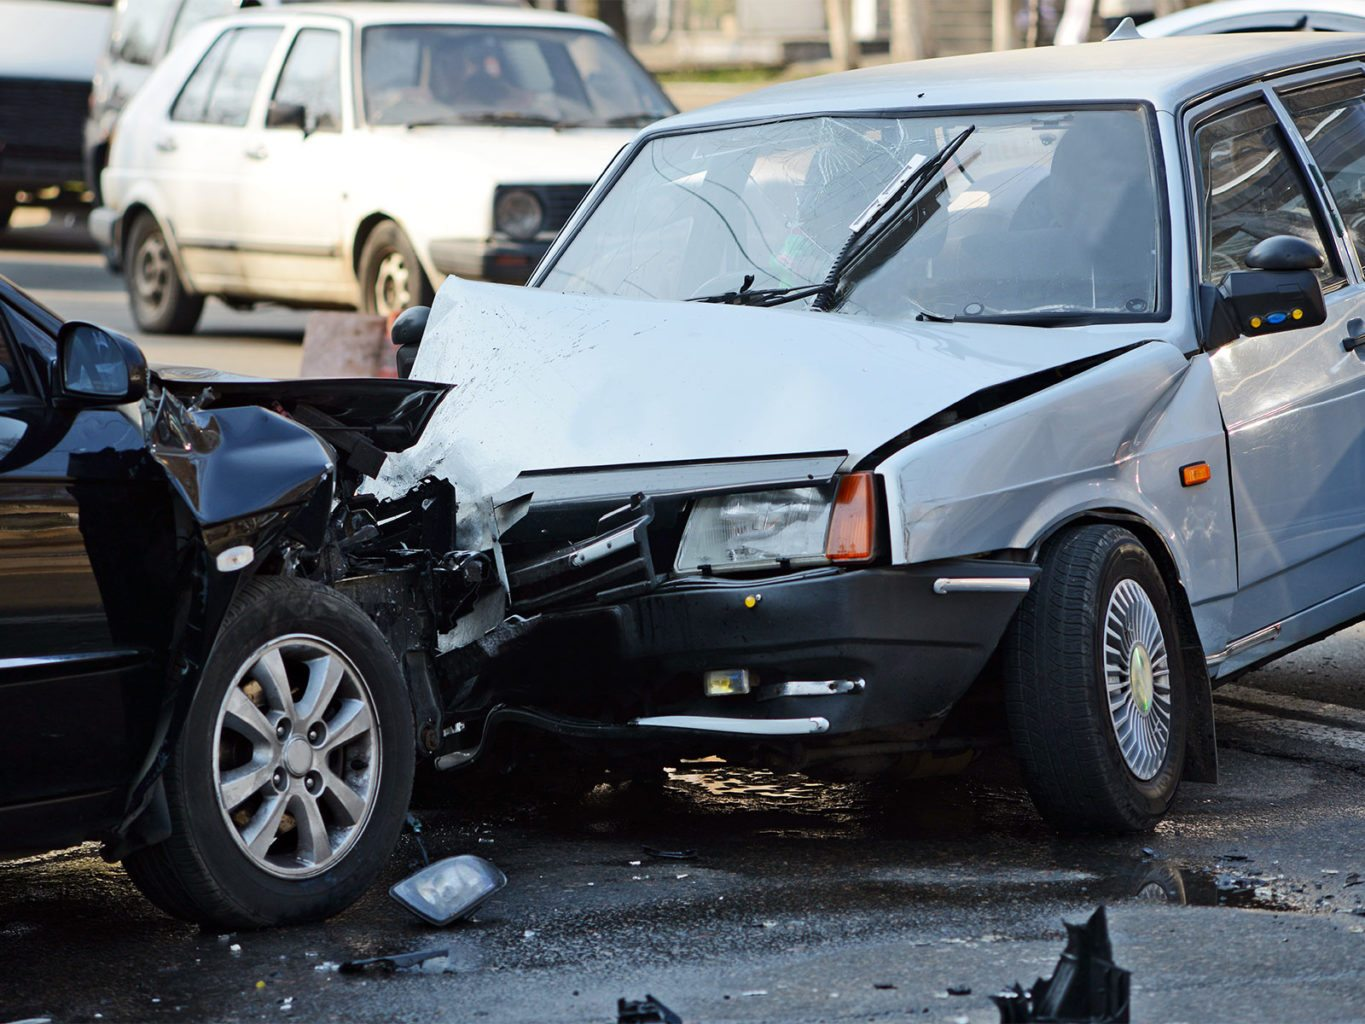 Proposition 213 limits one's recovery of economic damages in the case of a motor vehicle accident, though certain exceptions exist. (Courtesy photo)